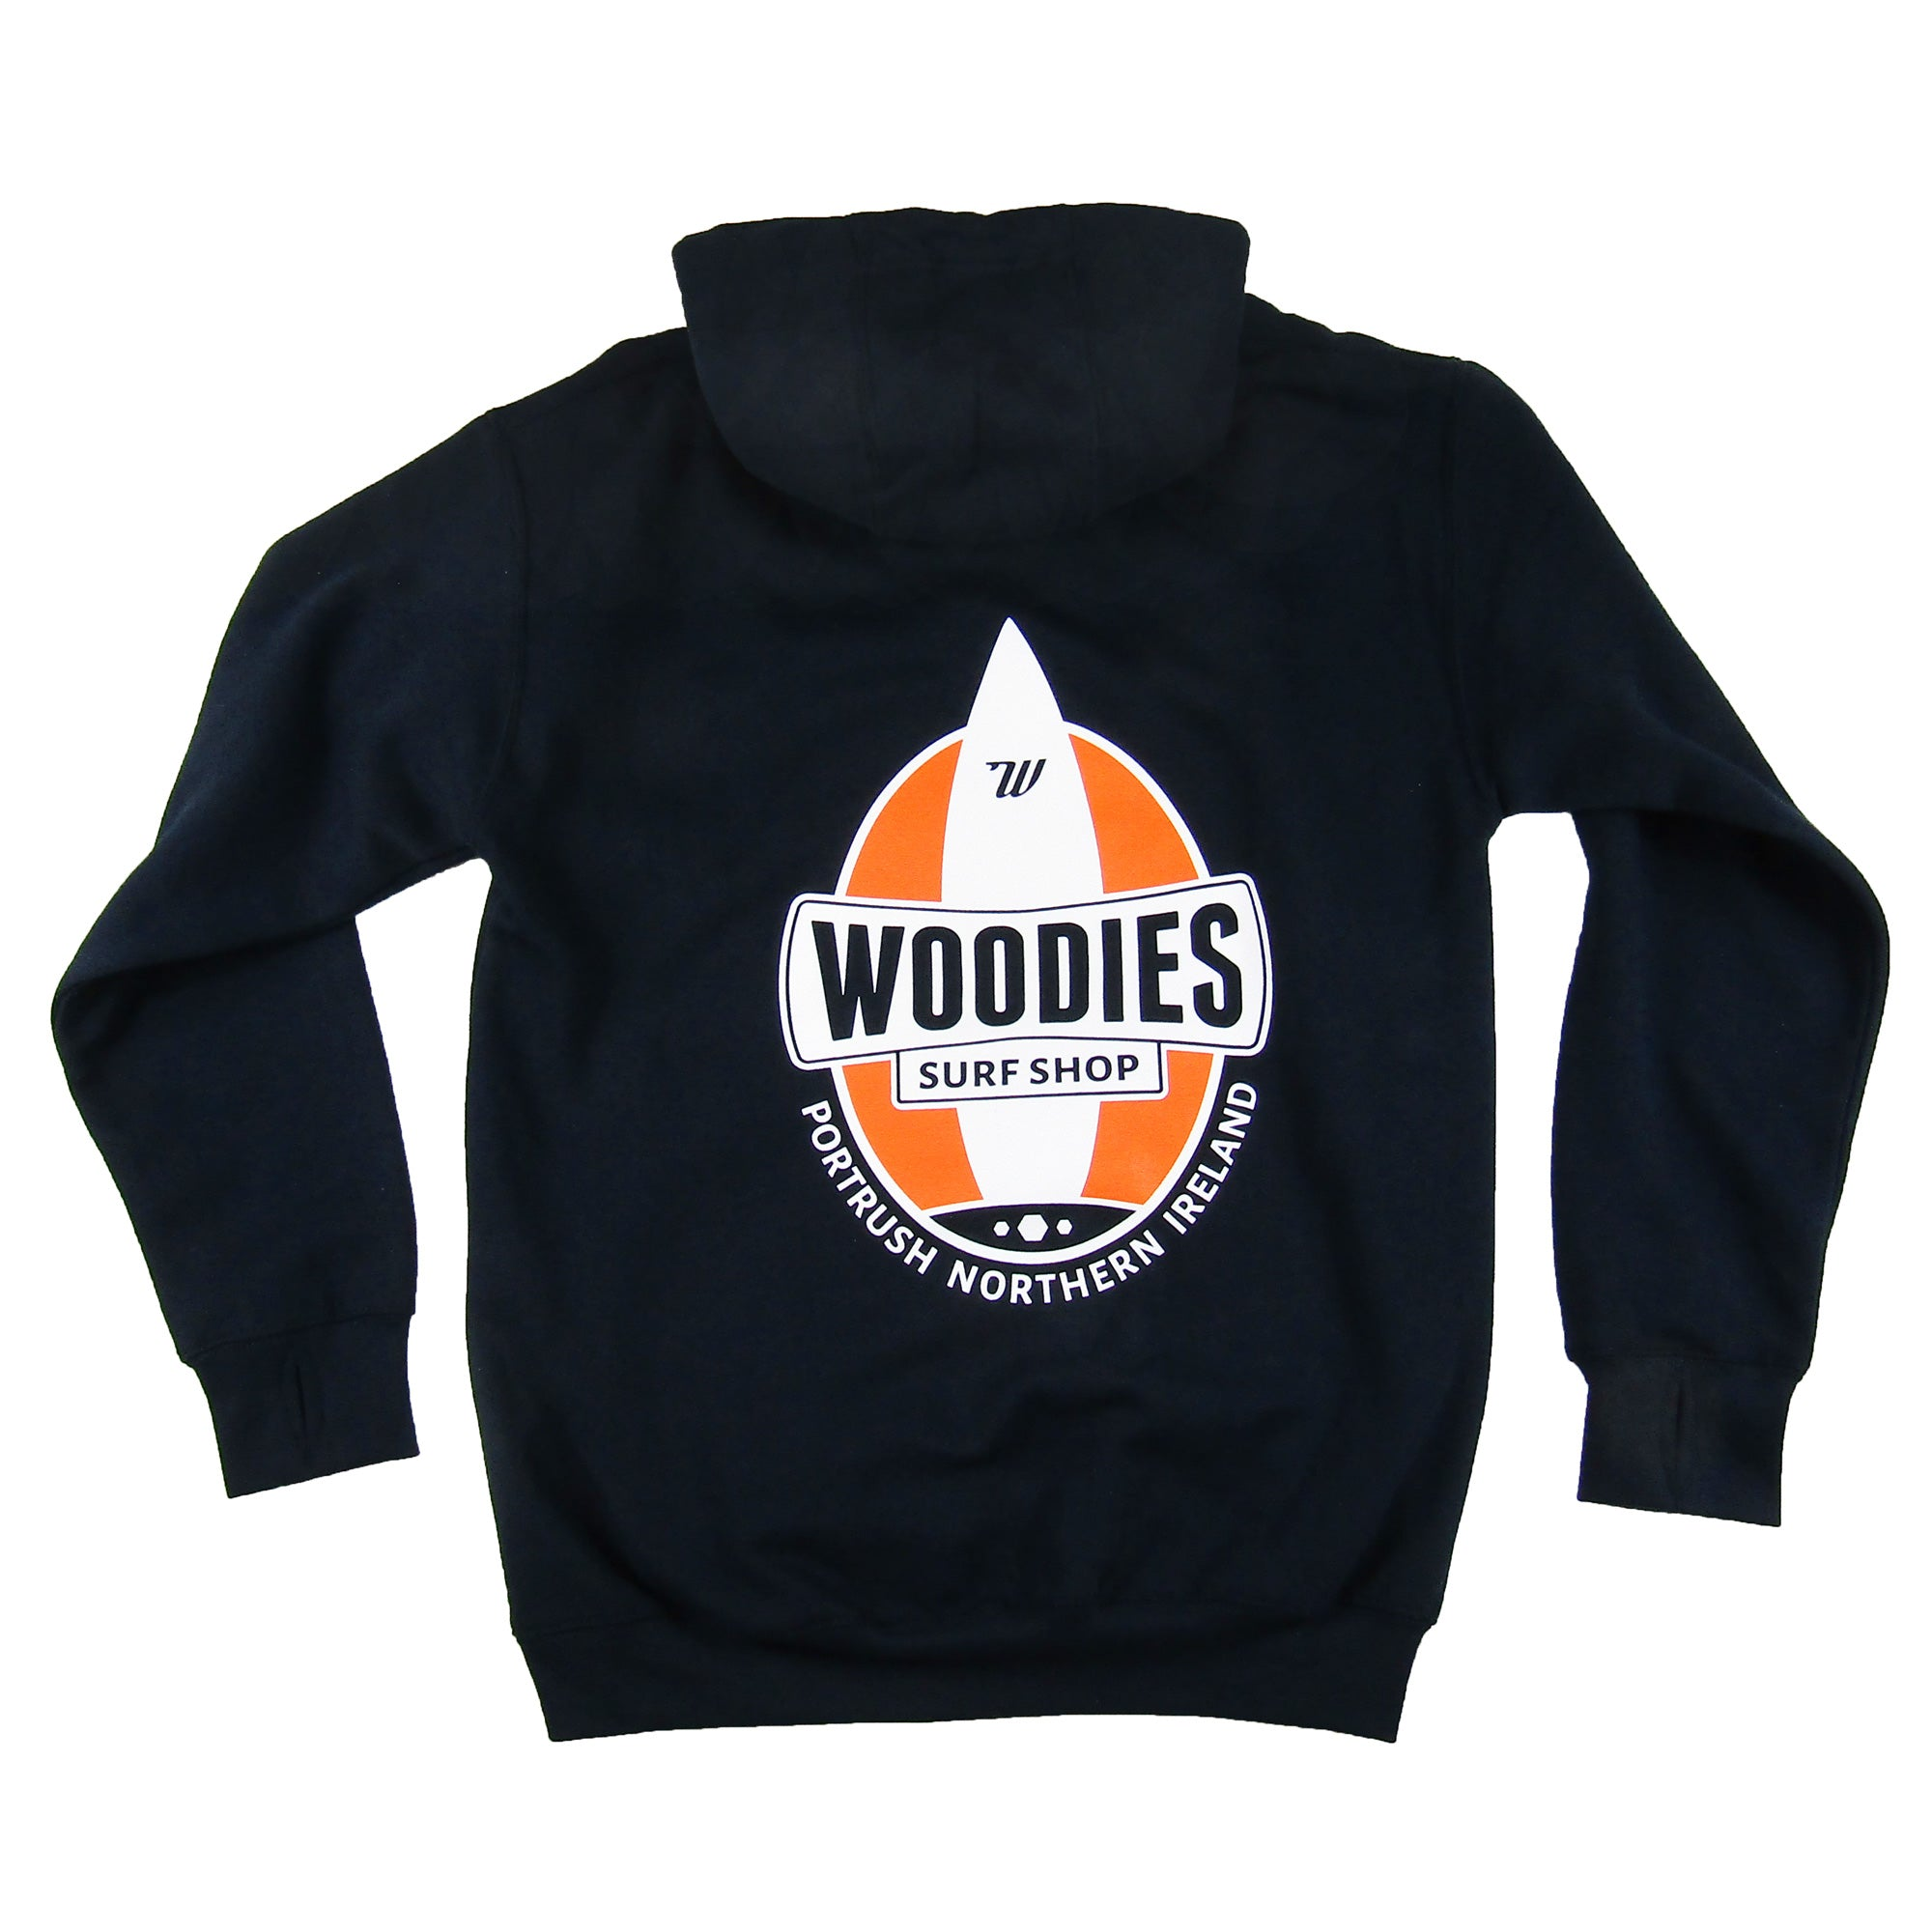 Mens - Navy Hoody - One Board Logo in Orange & White